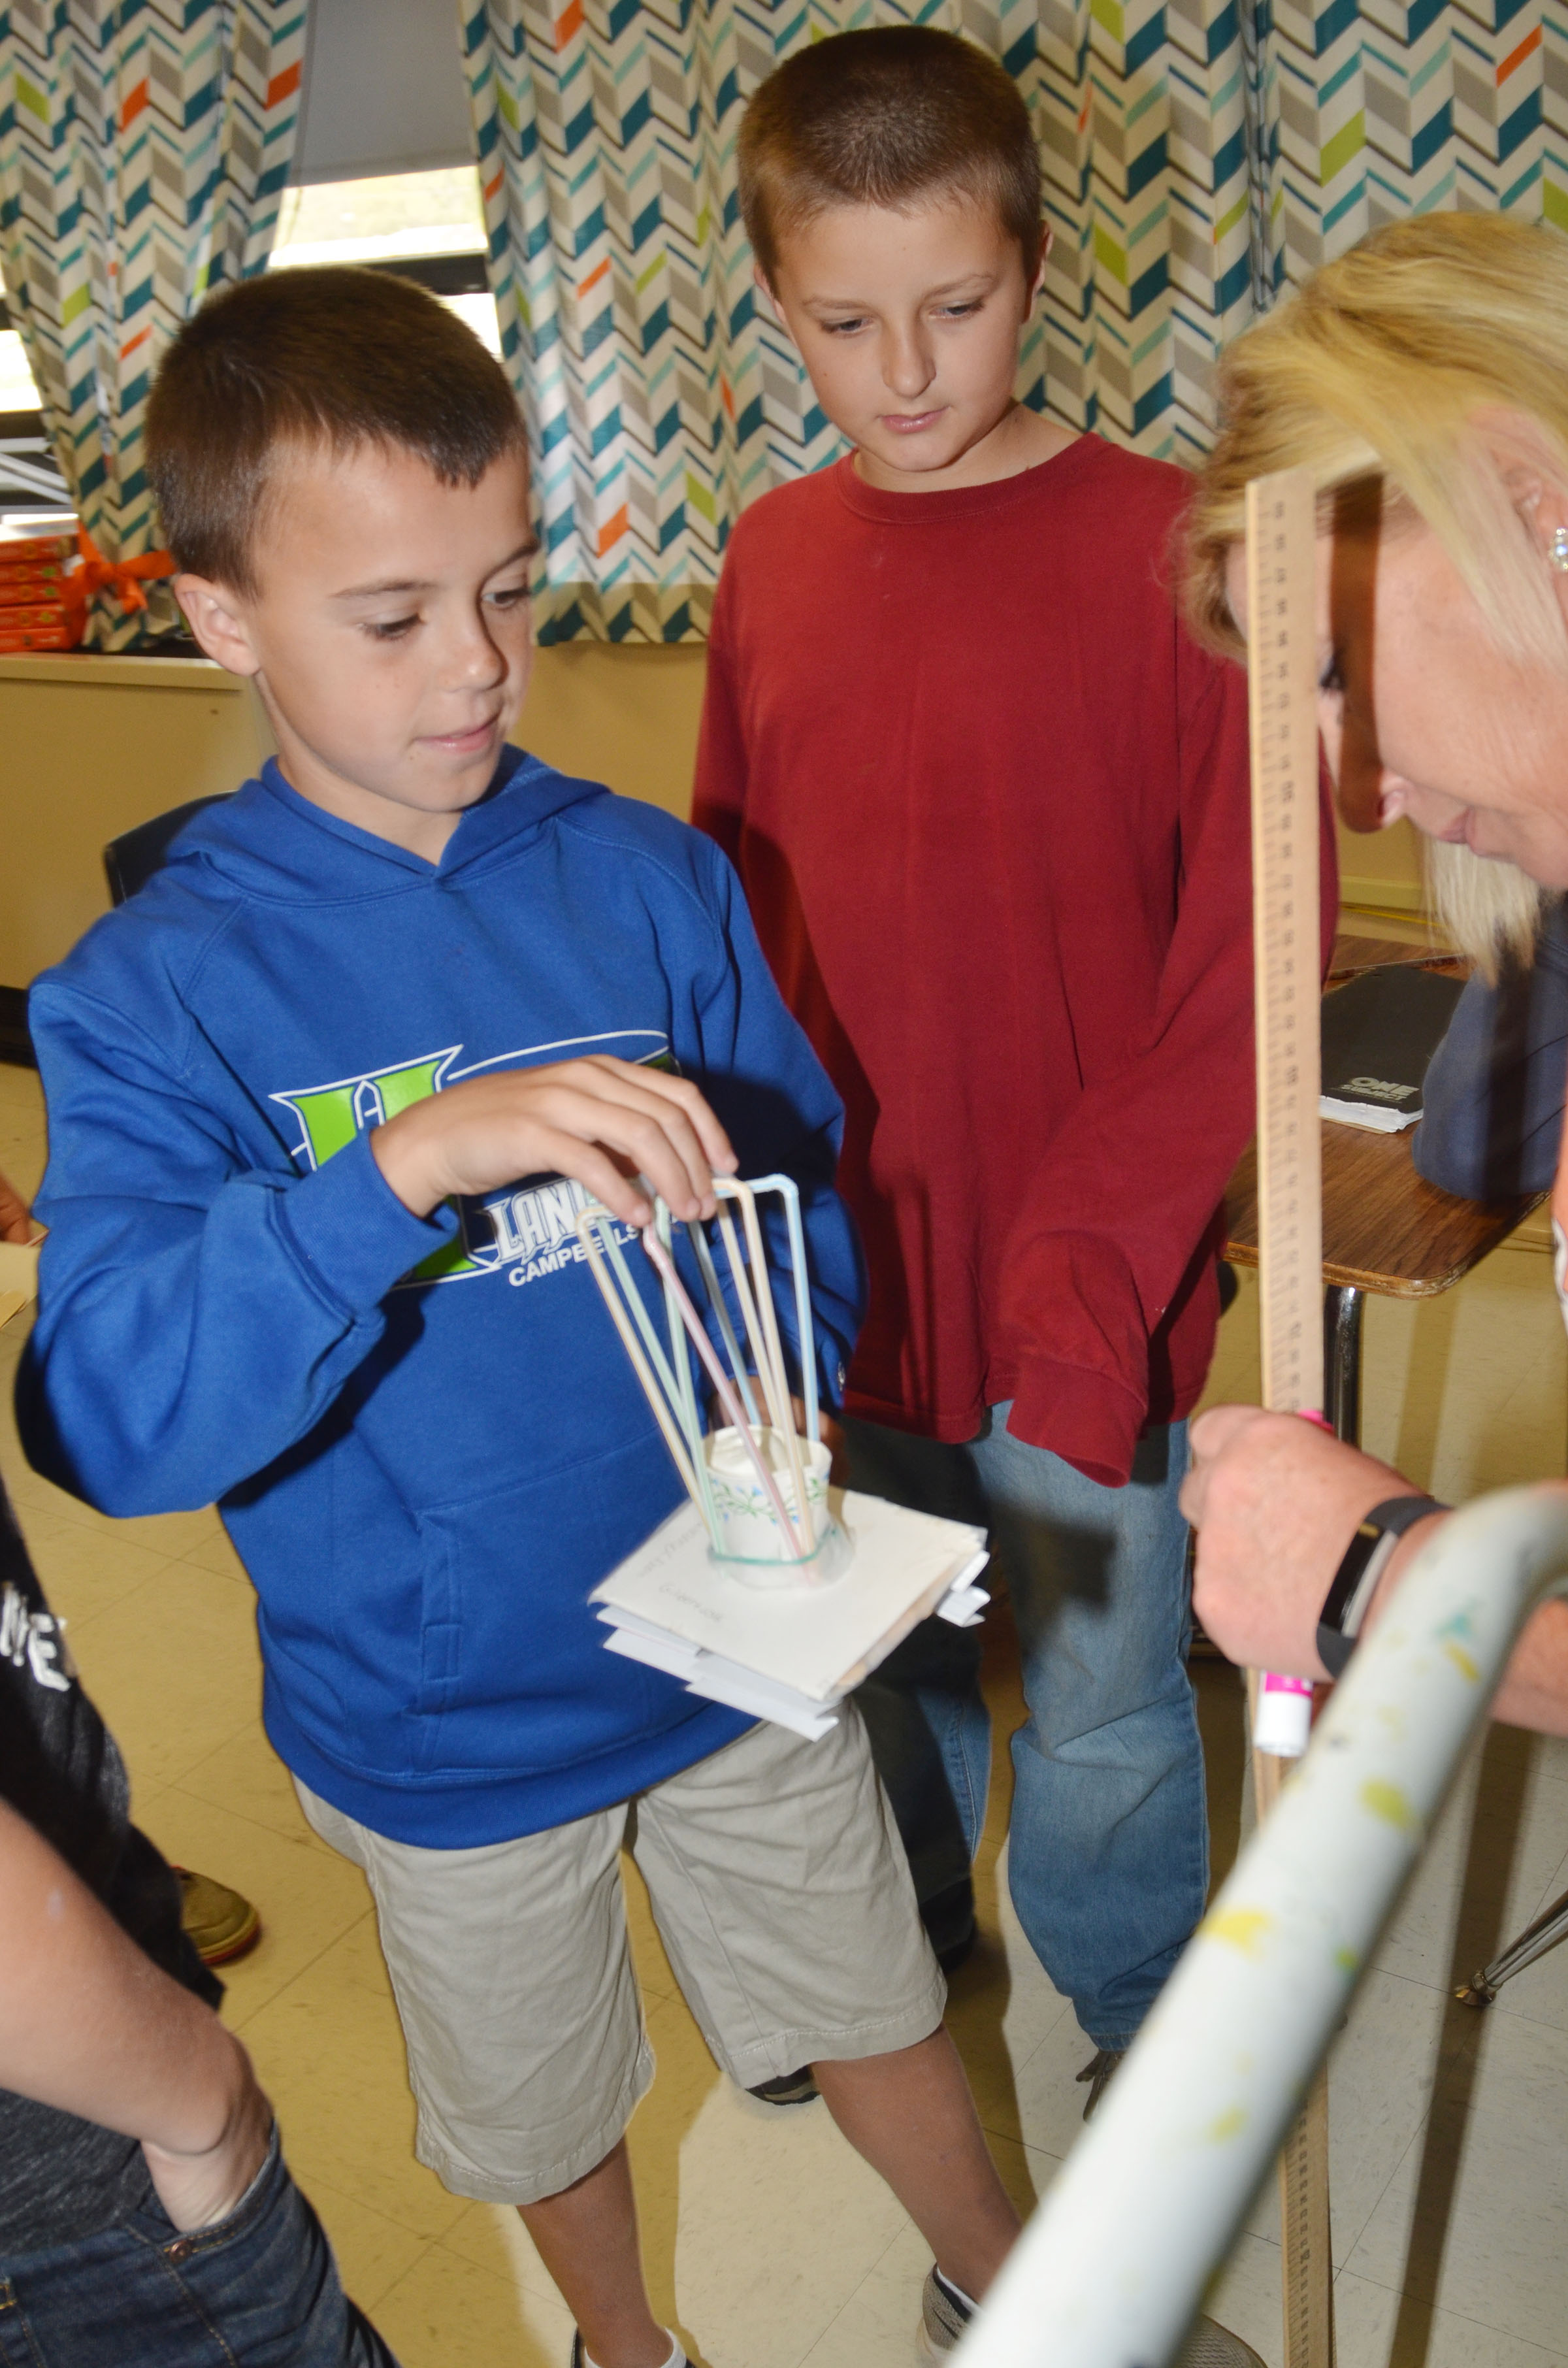 CMS sixth-graders Chase Hord, at left, and Logan Marples test their group's spacecraft, with help from teacher Jan Speer.